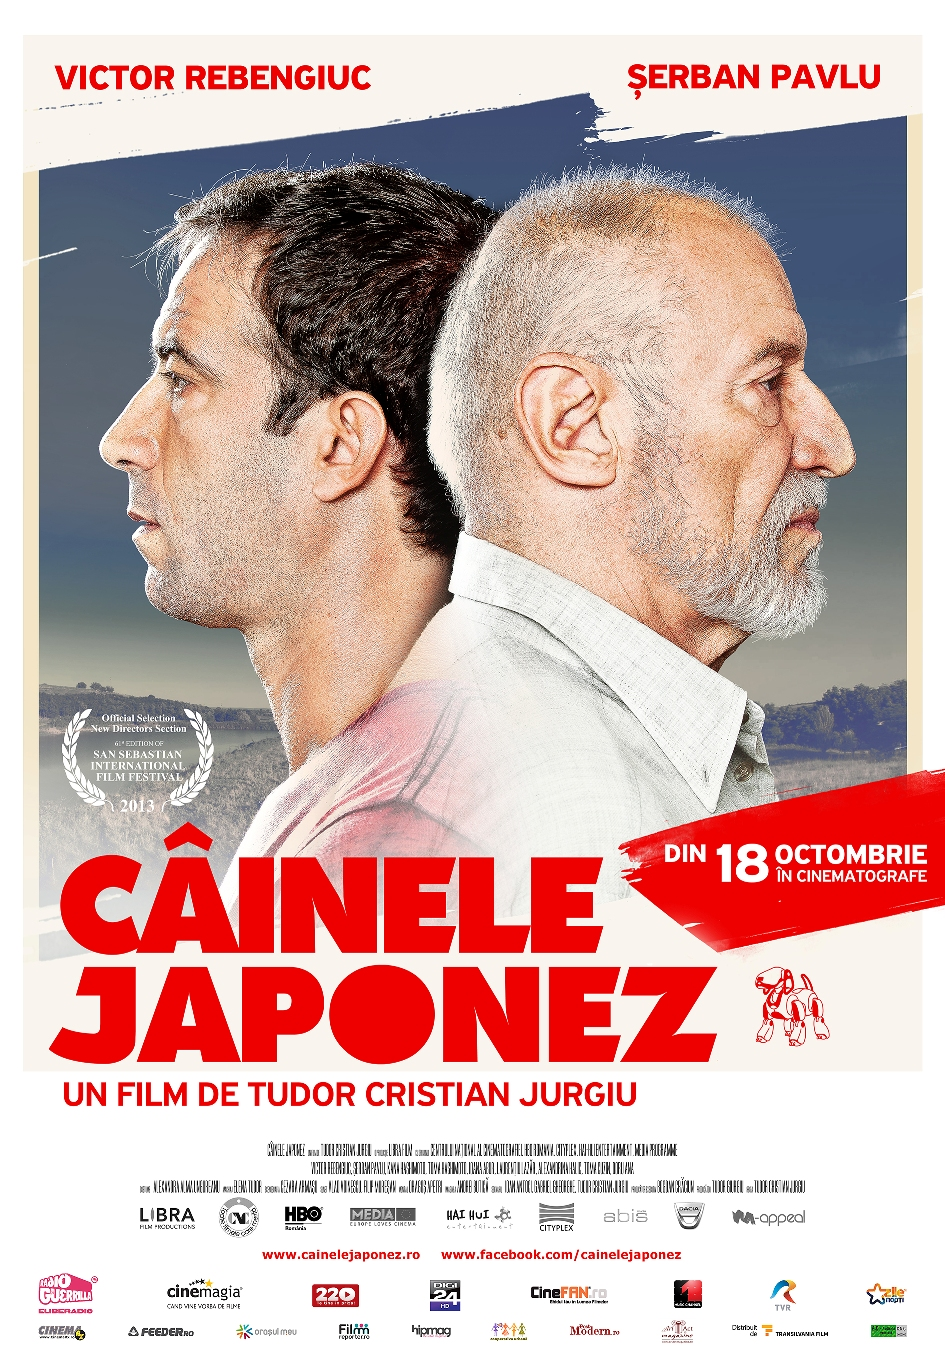 Câinele japonez (2012) - Photo